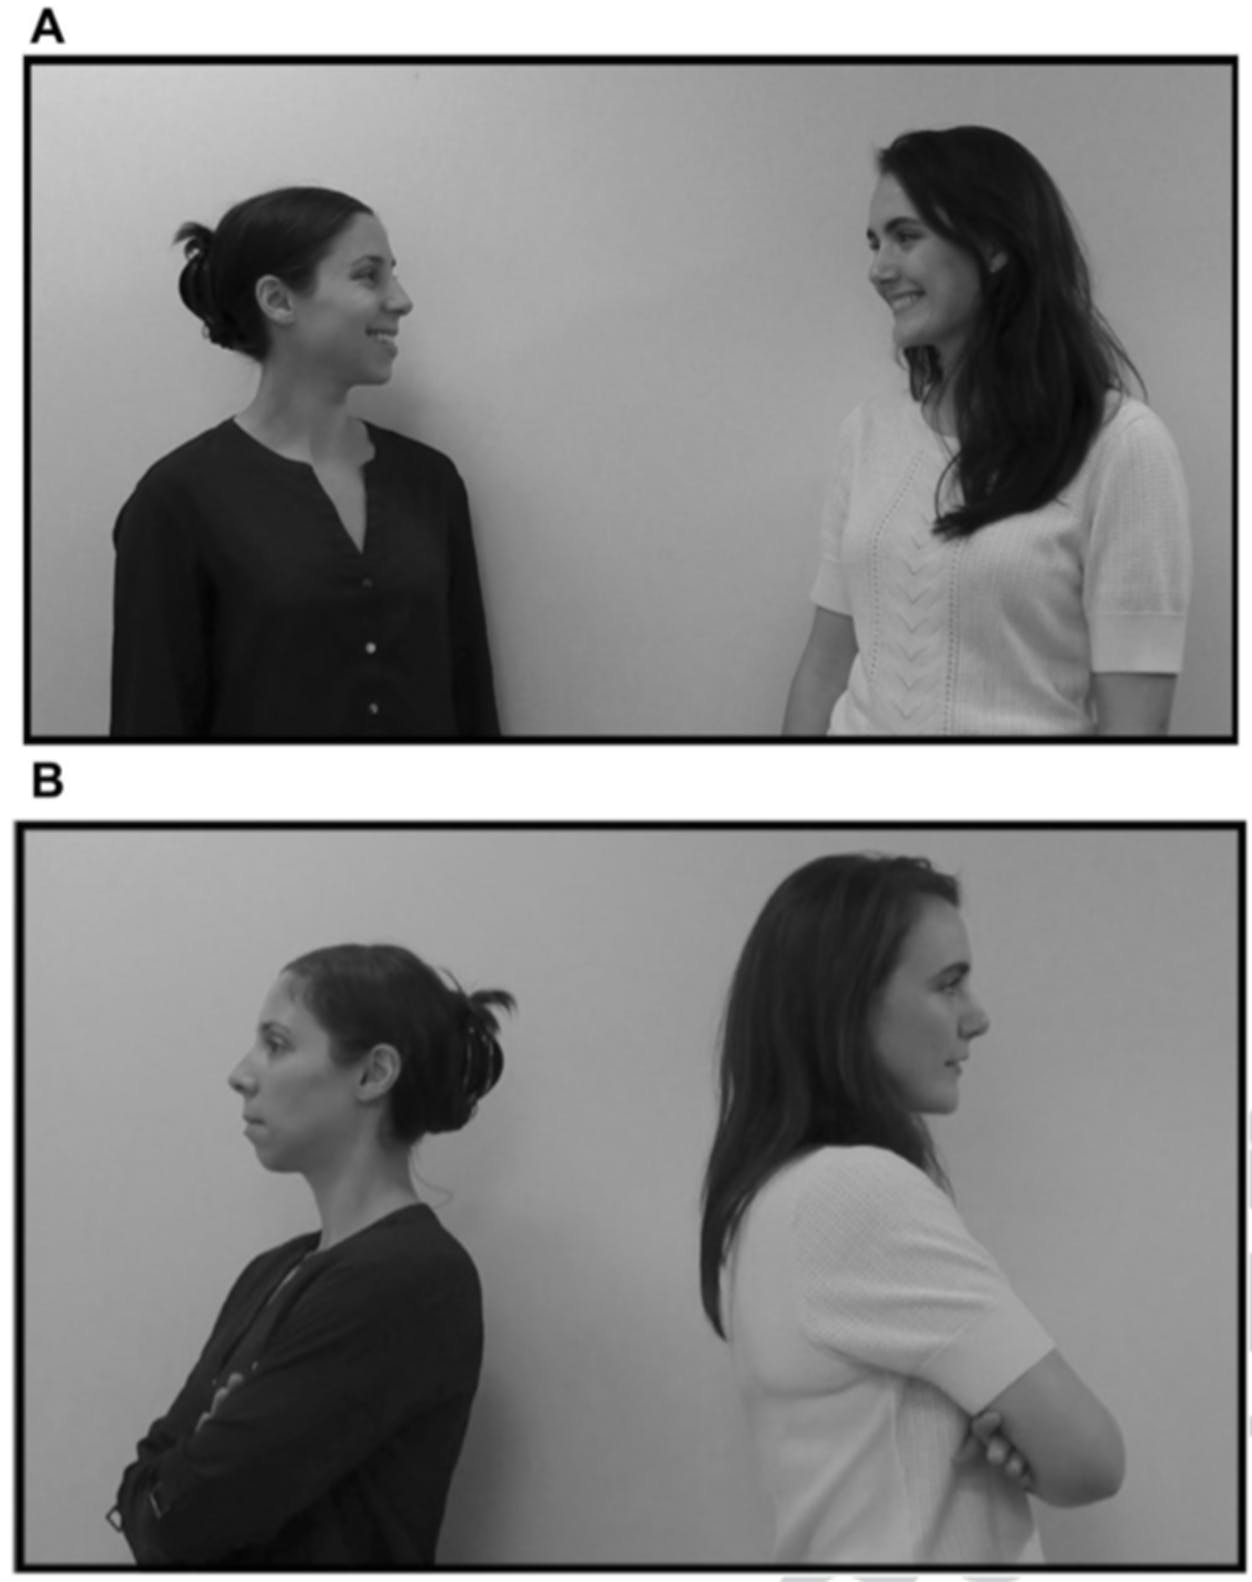 Babies noticed when videos of people acting like friends (A) or strangers (B) didn't match up with the audio recordings of laughter.